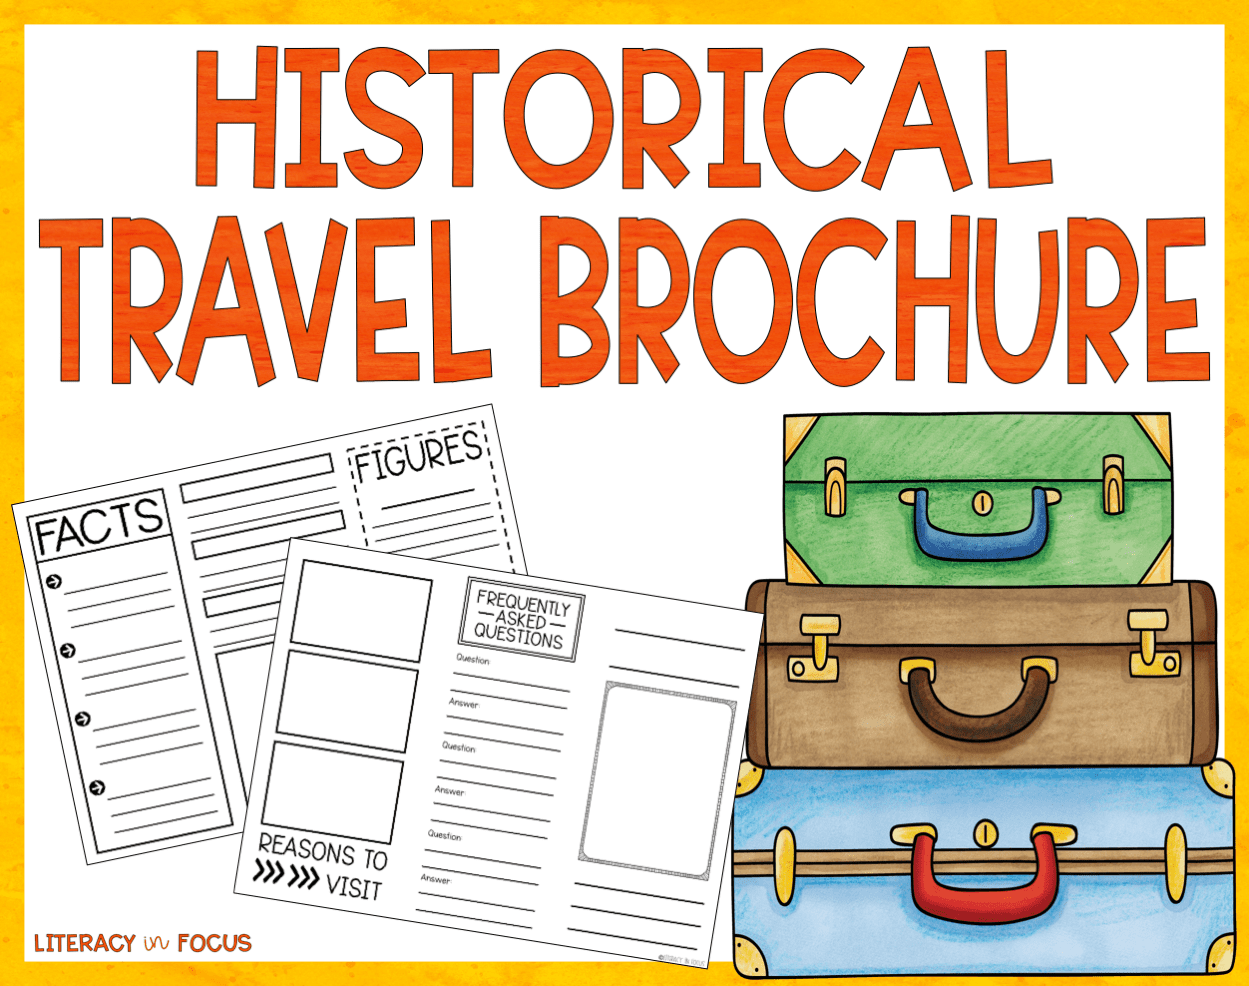 Historical Travel Brochure